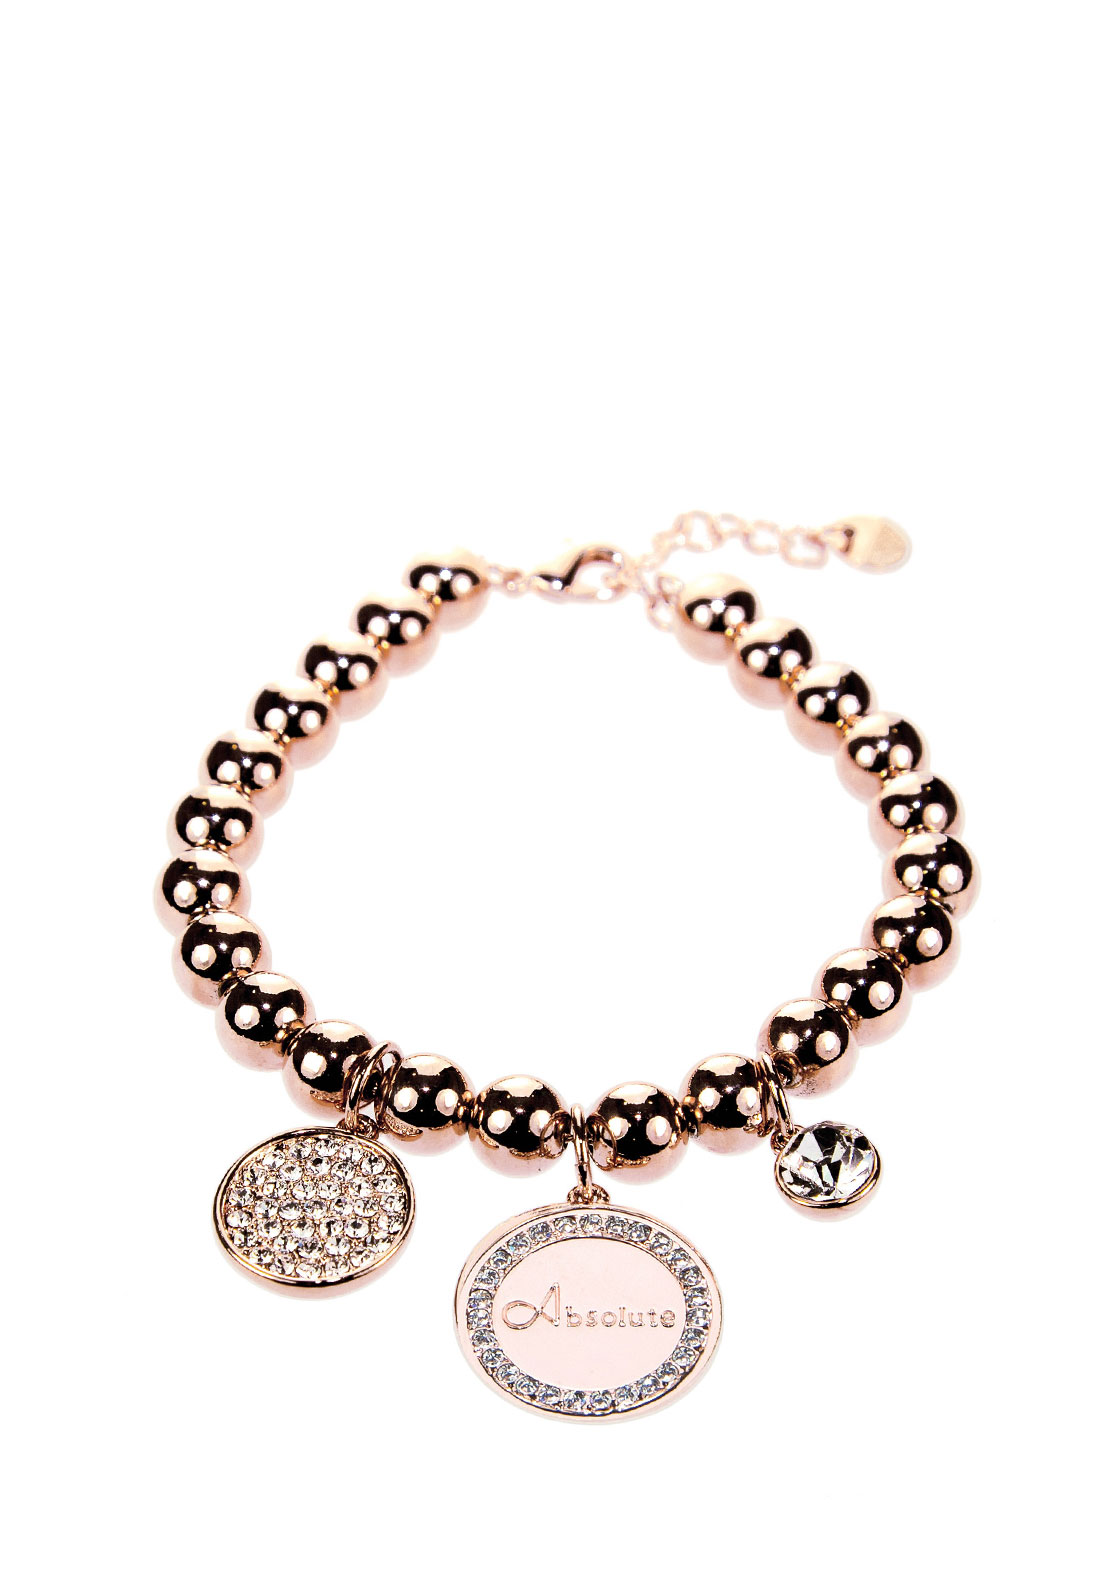 Absolute Pearl Charm Bracelet, Rose Gold